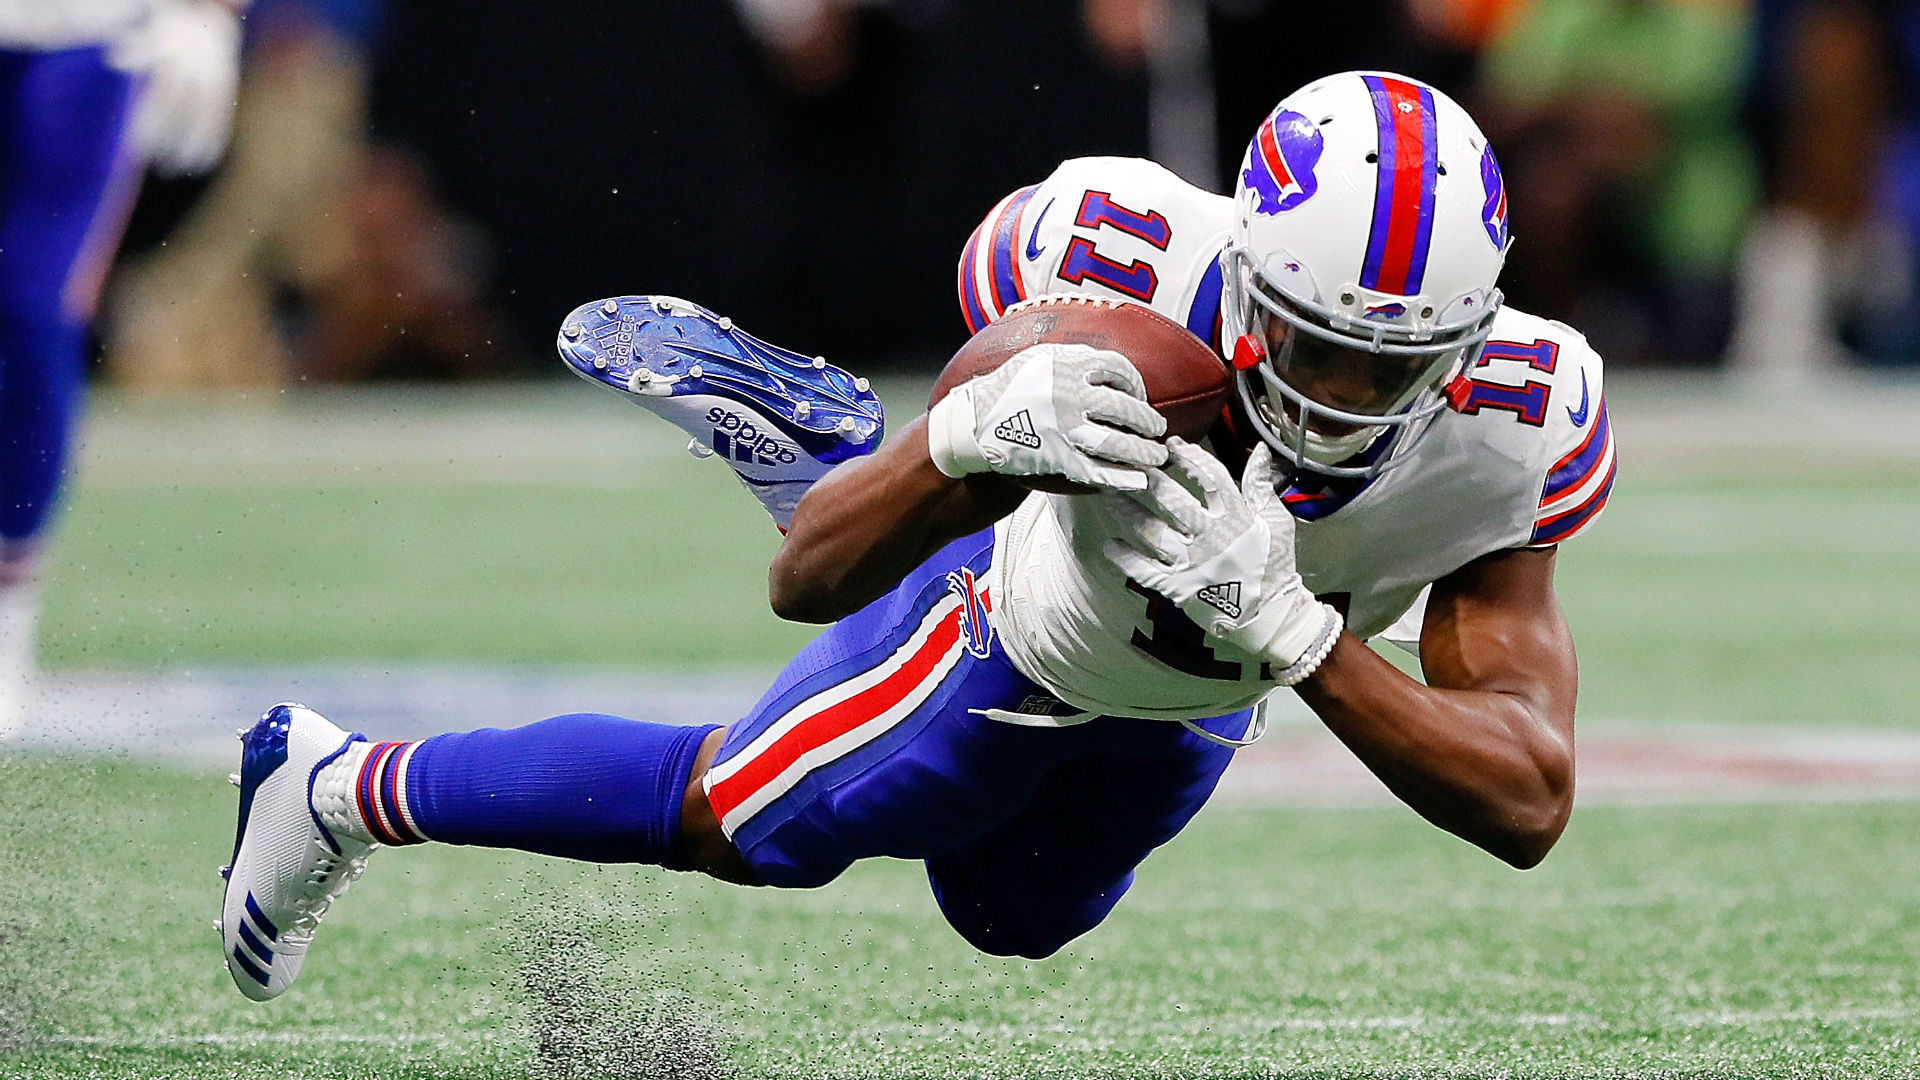 Bills' Zay Jones appears to levitate after play, Internet goes crazy